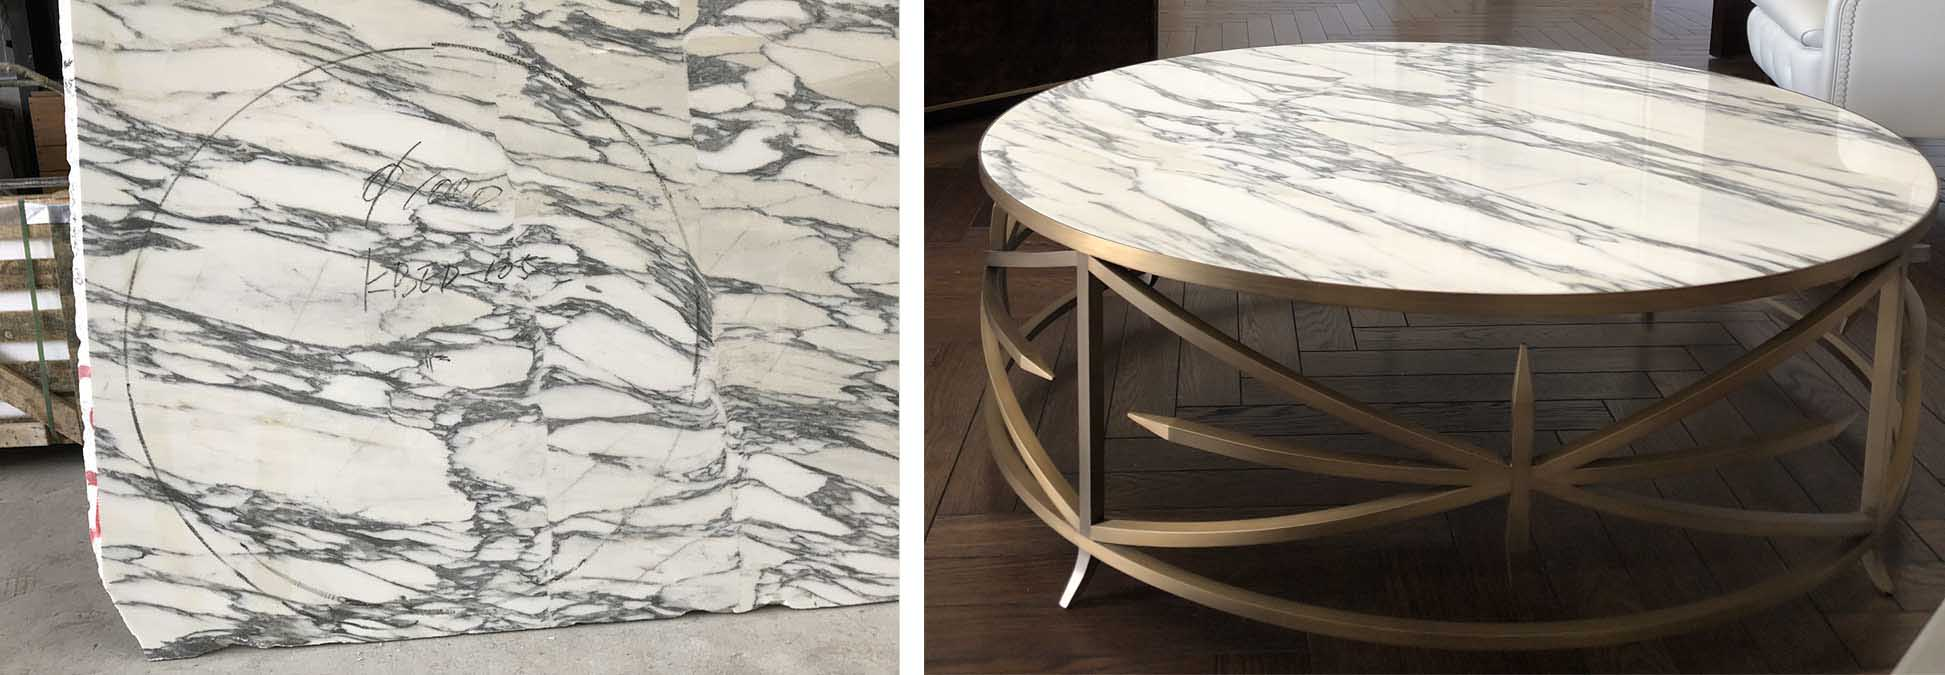 Marble for custom cocktail table by Decca London